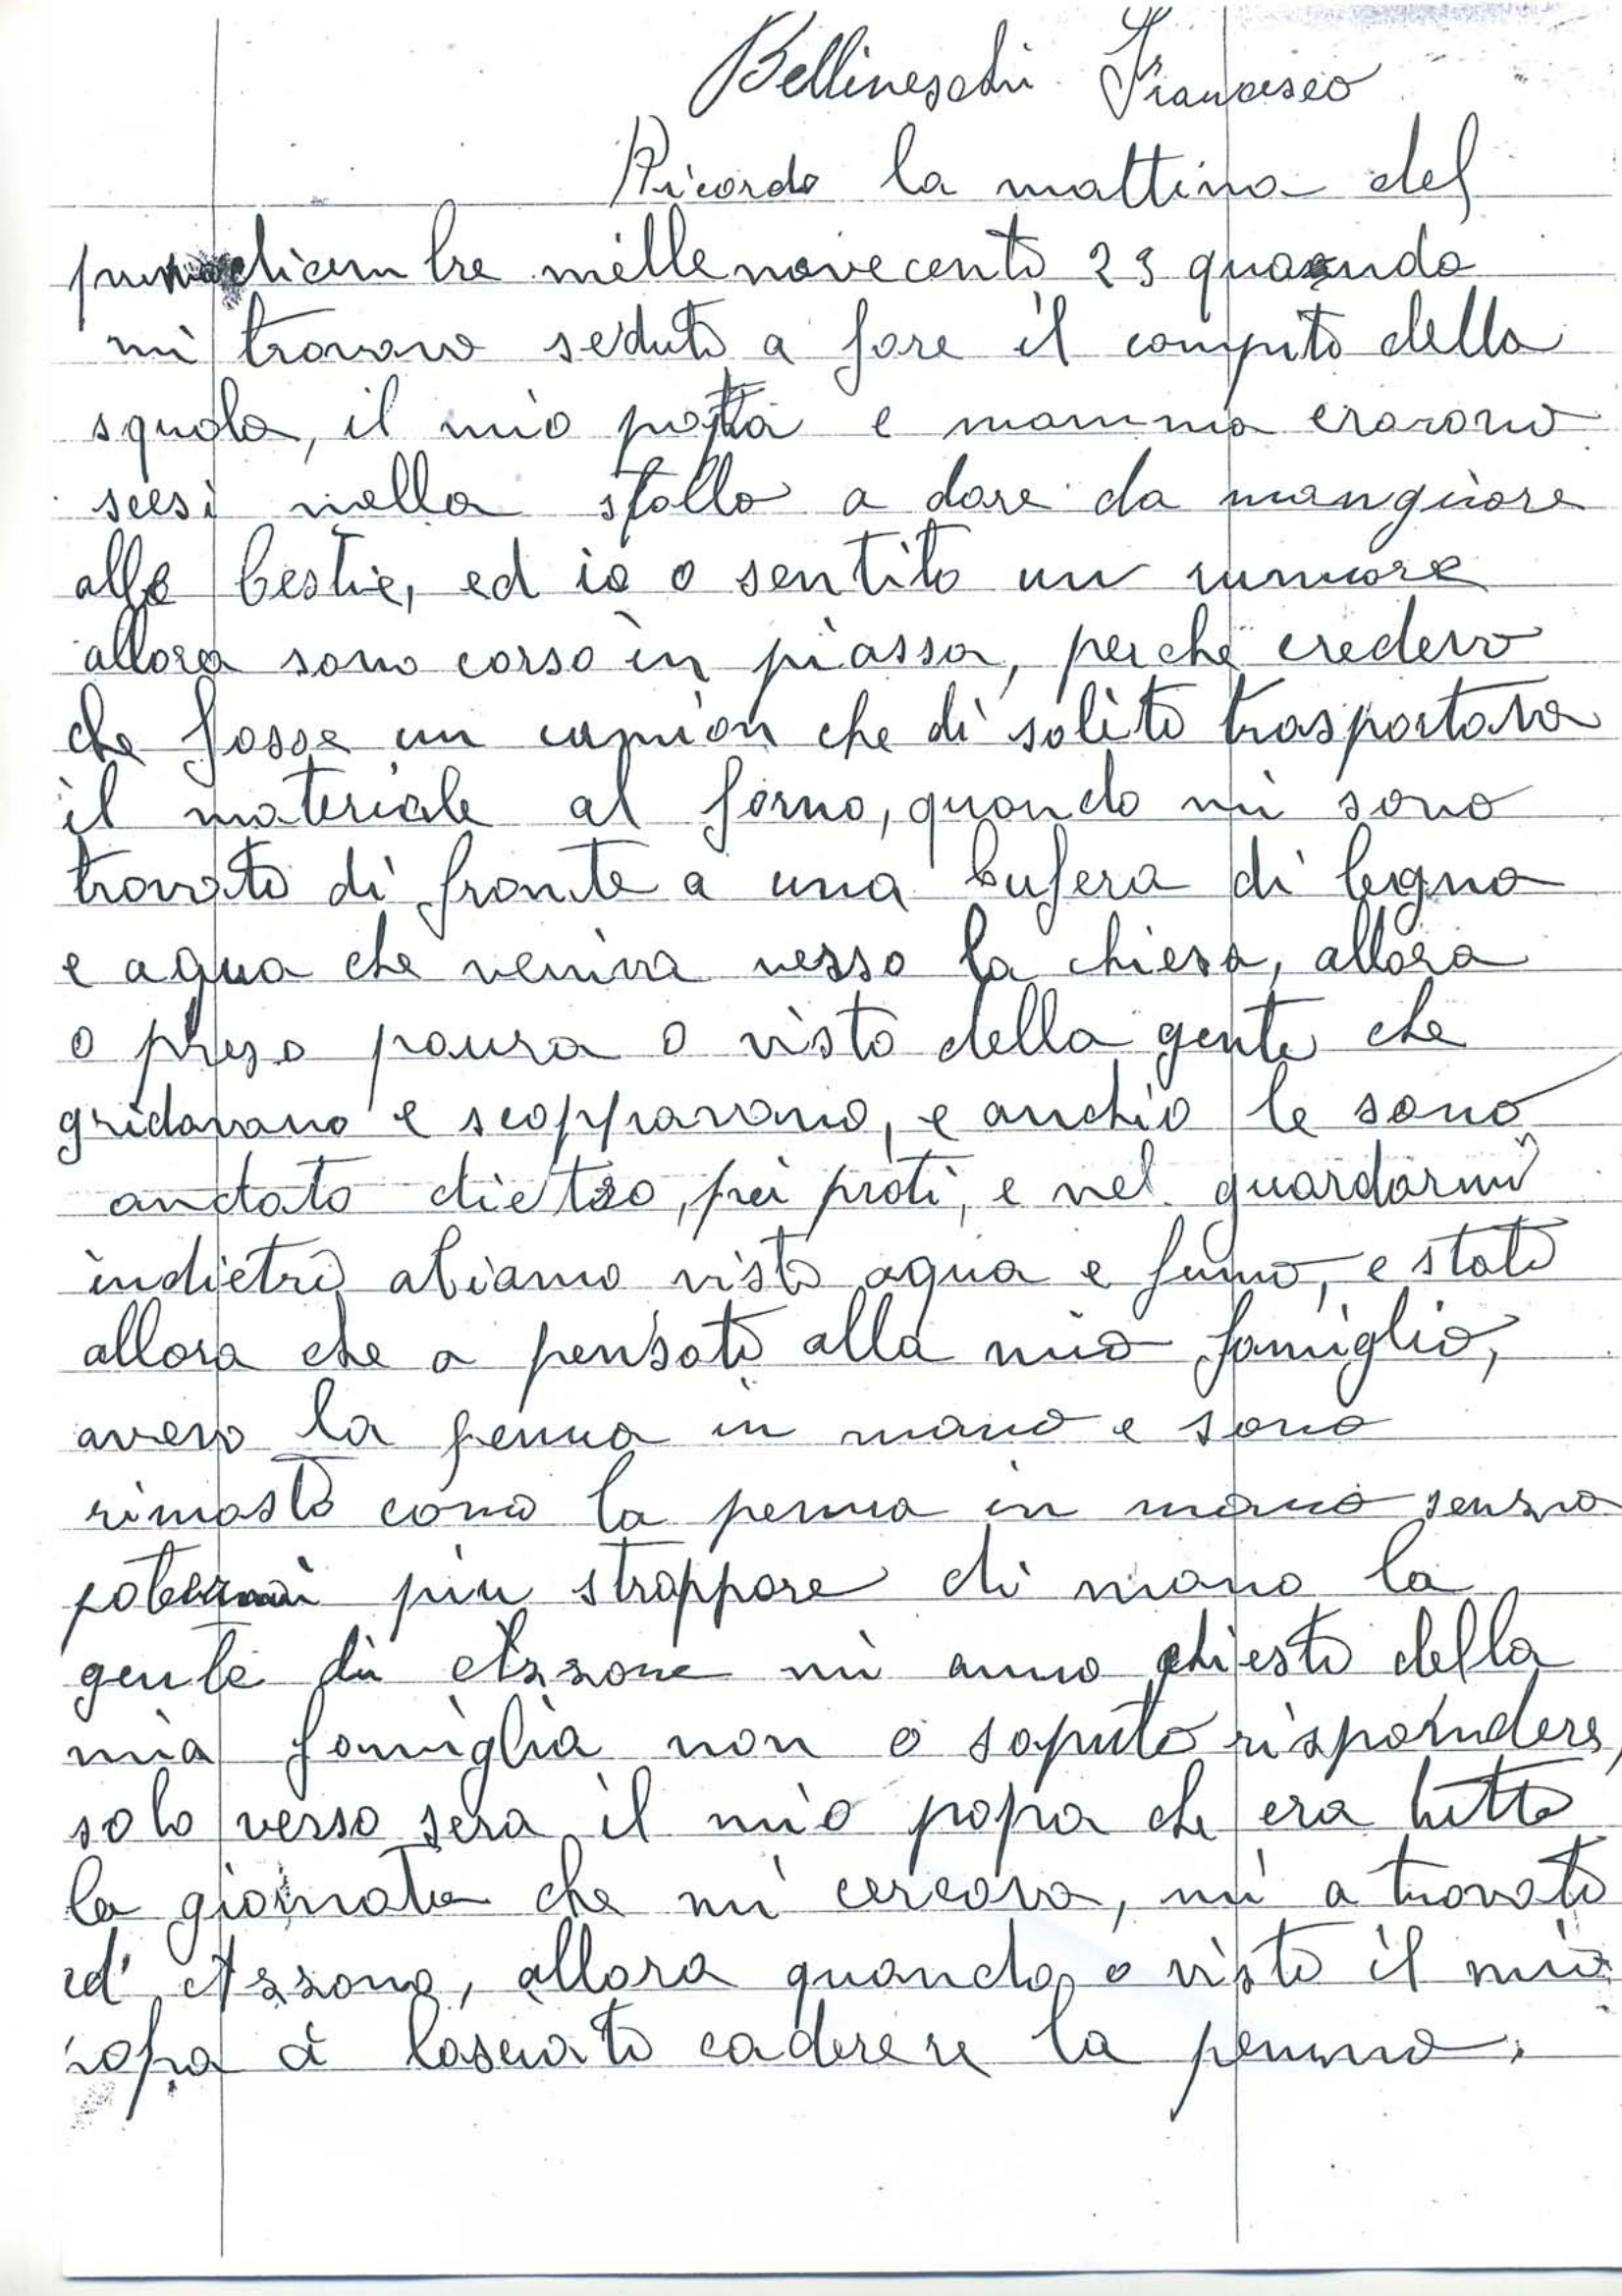 Lettera di Bettineschi Francesco